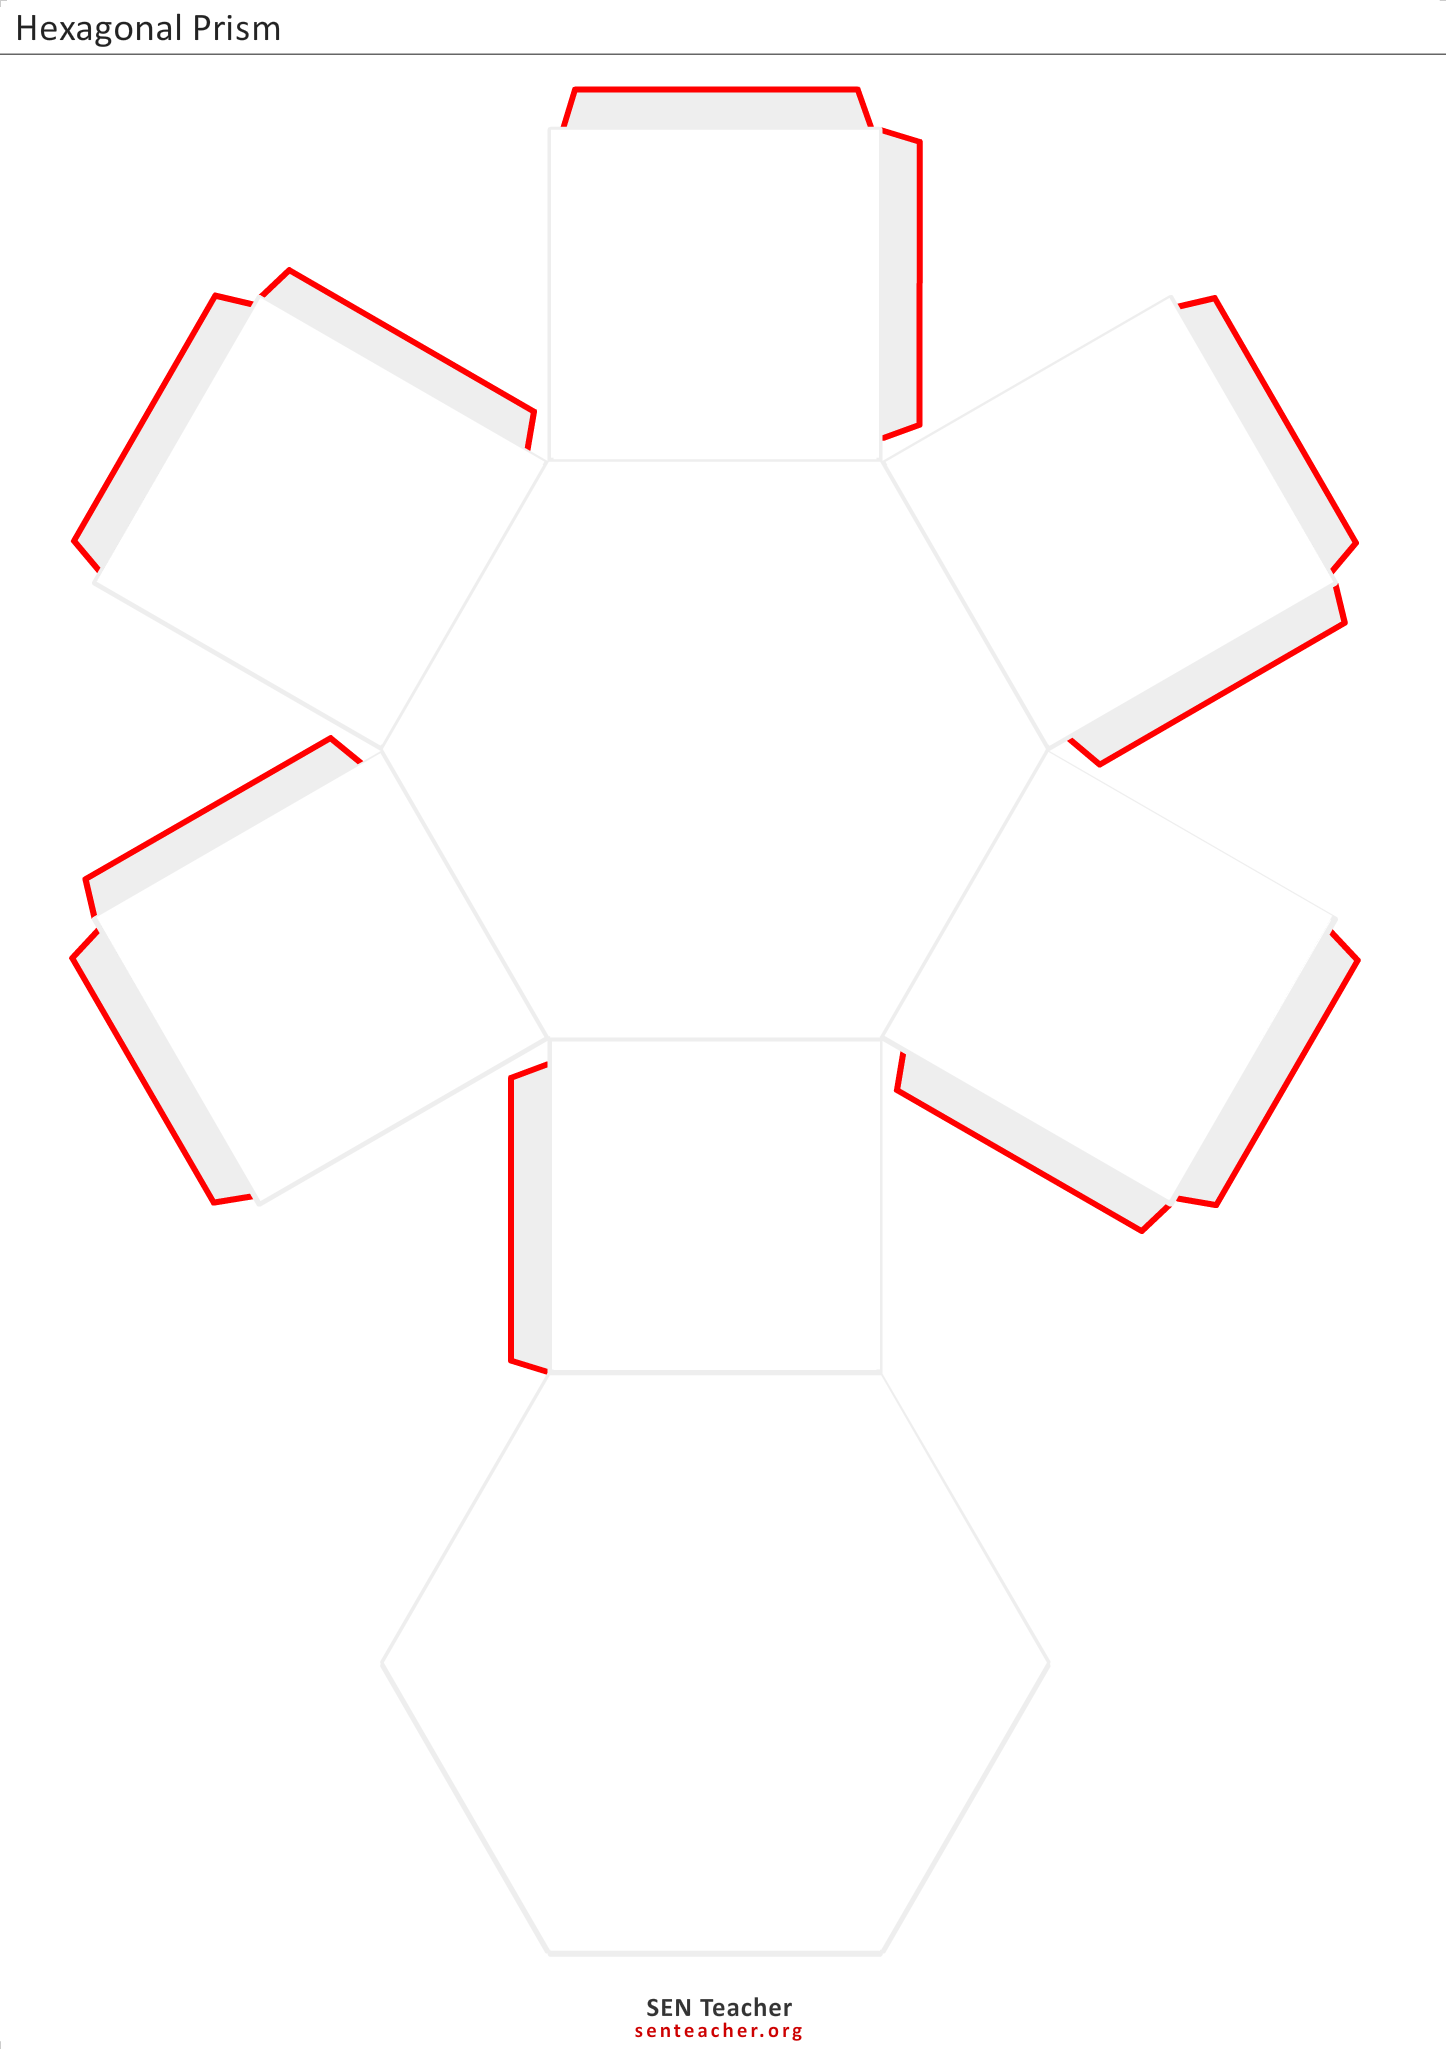 Hexagonal prism